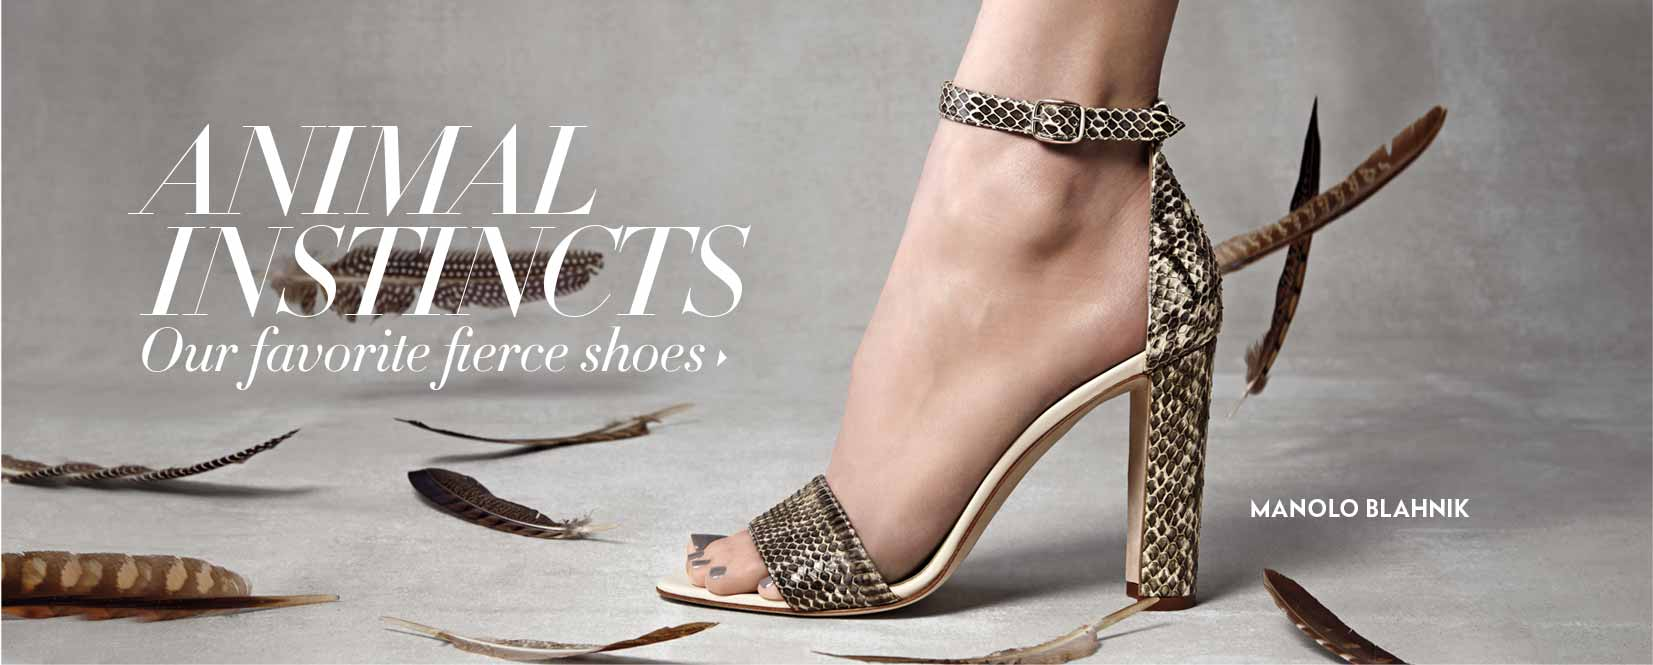 Manolo Blahnik Shoes: Animal Instincts